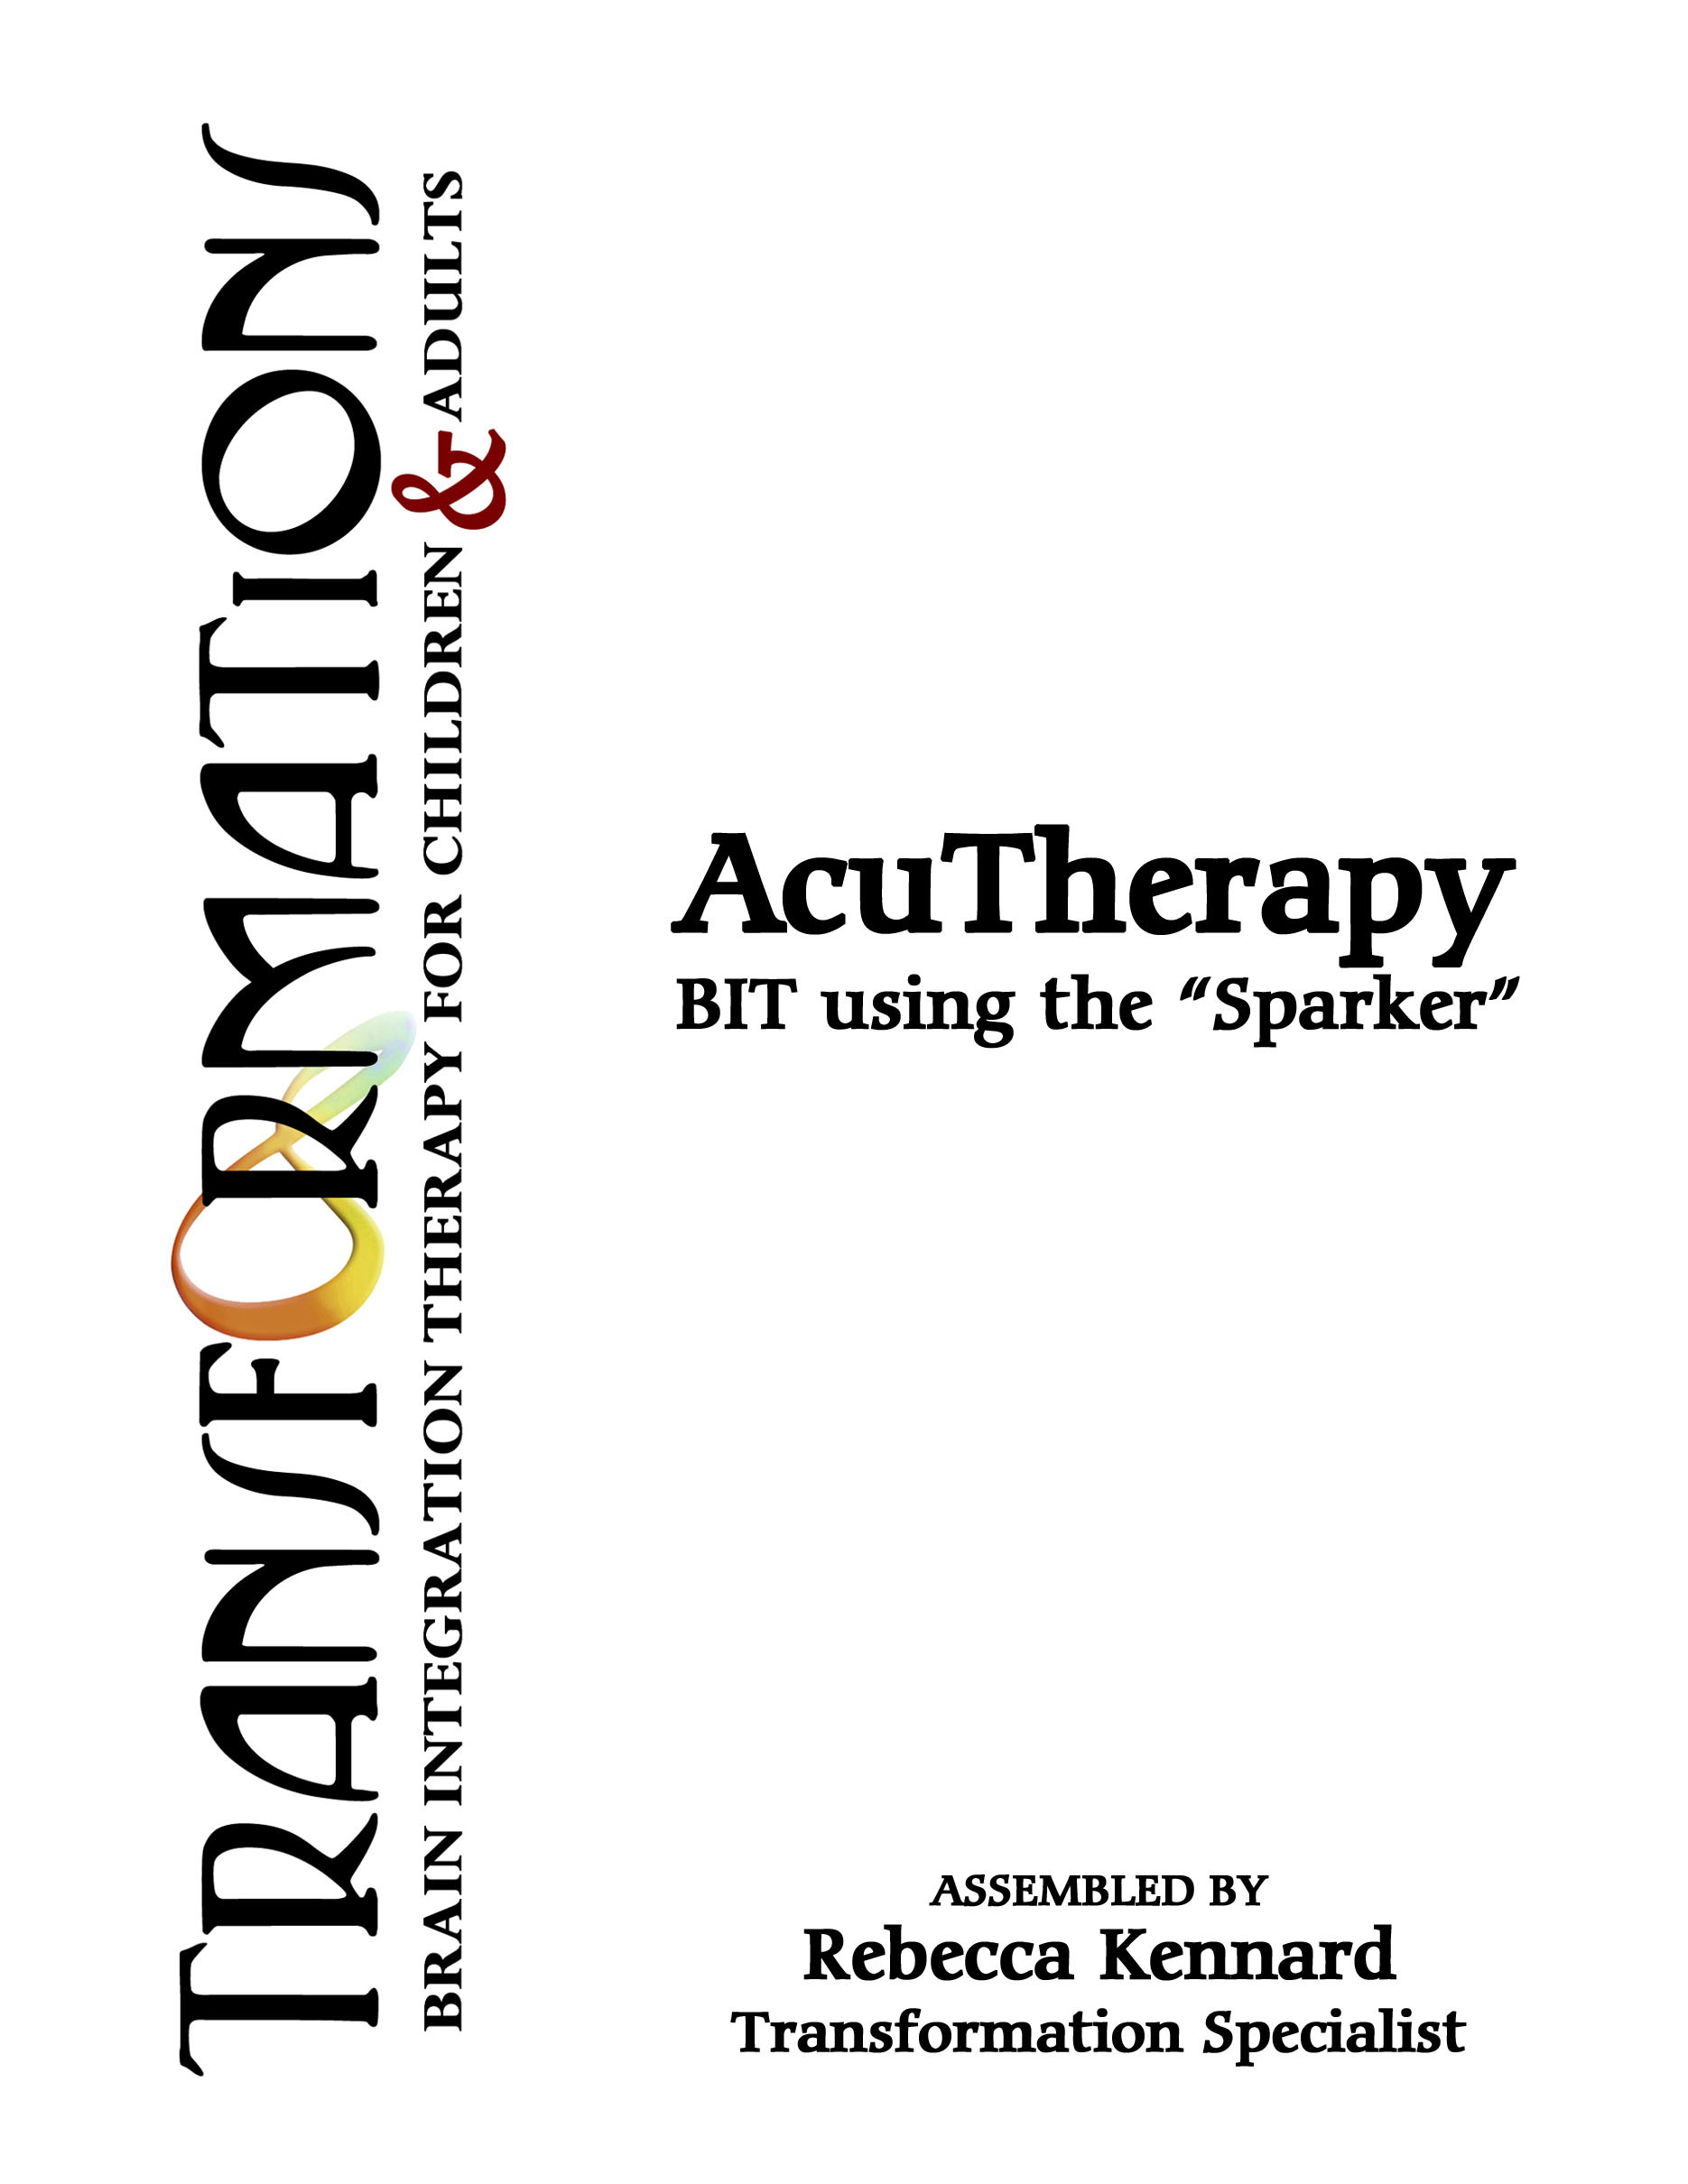 BIT TWO - AcuTherapy